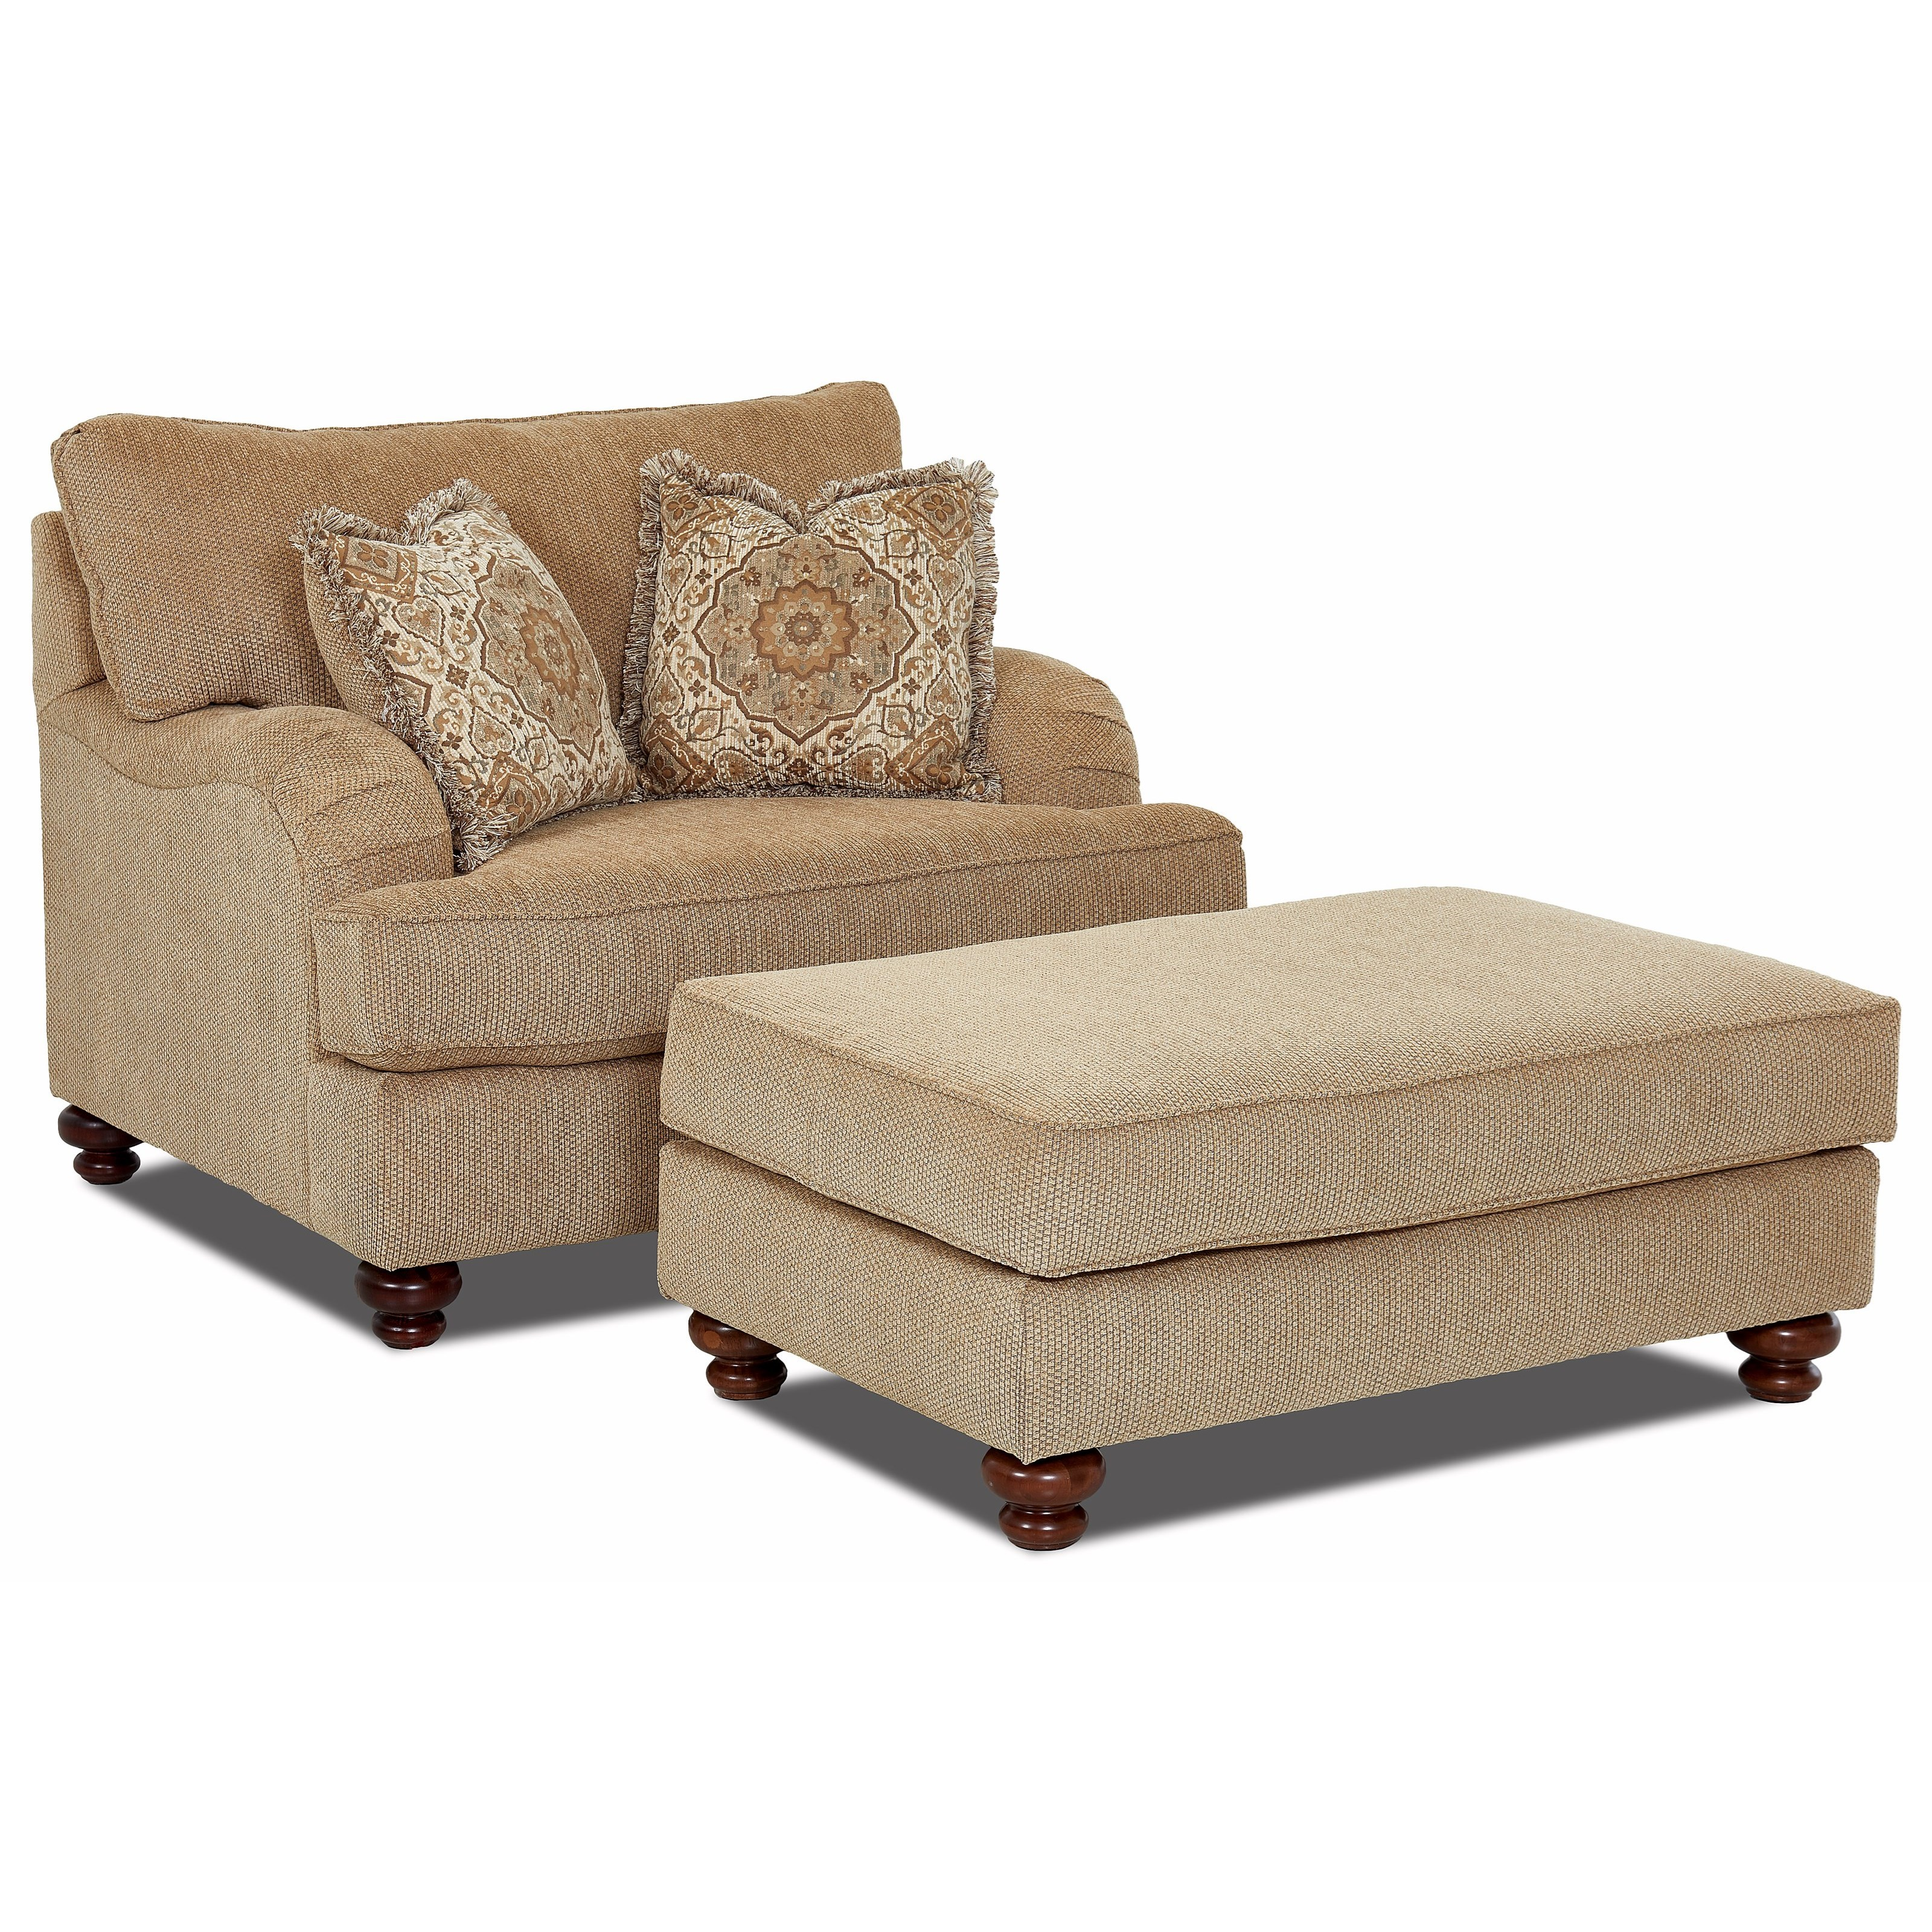 Klaussner Declan Oversized Chair and Ottoman Set Royal Furniture